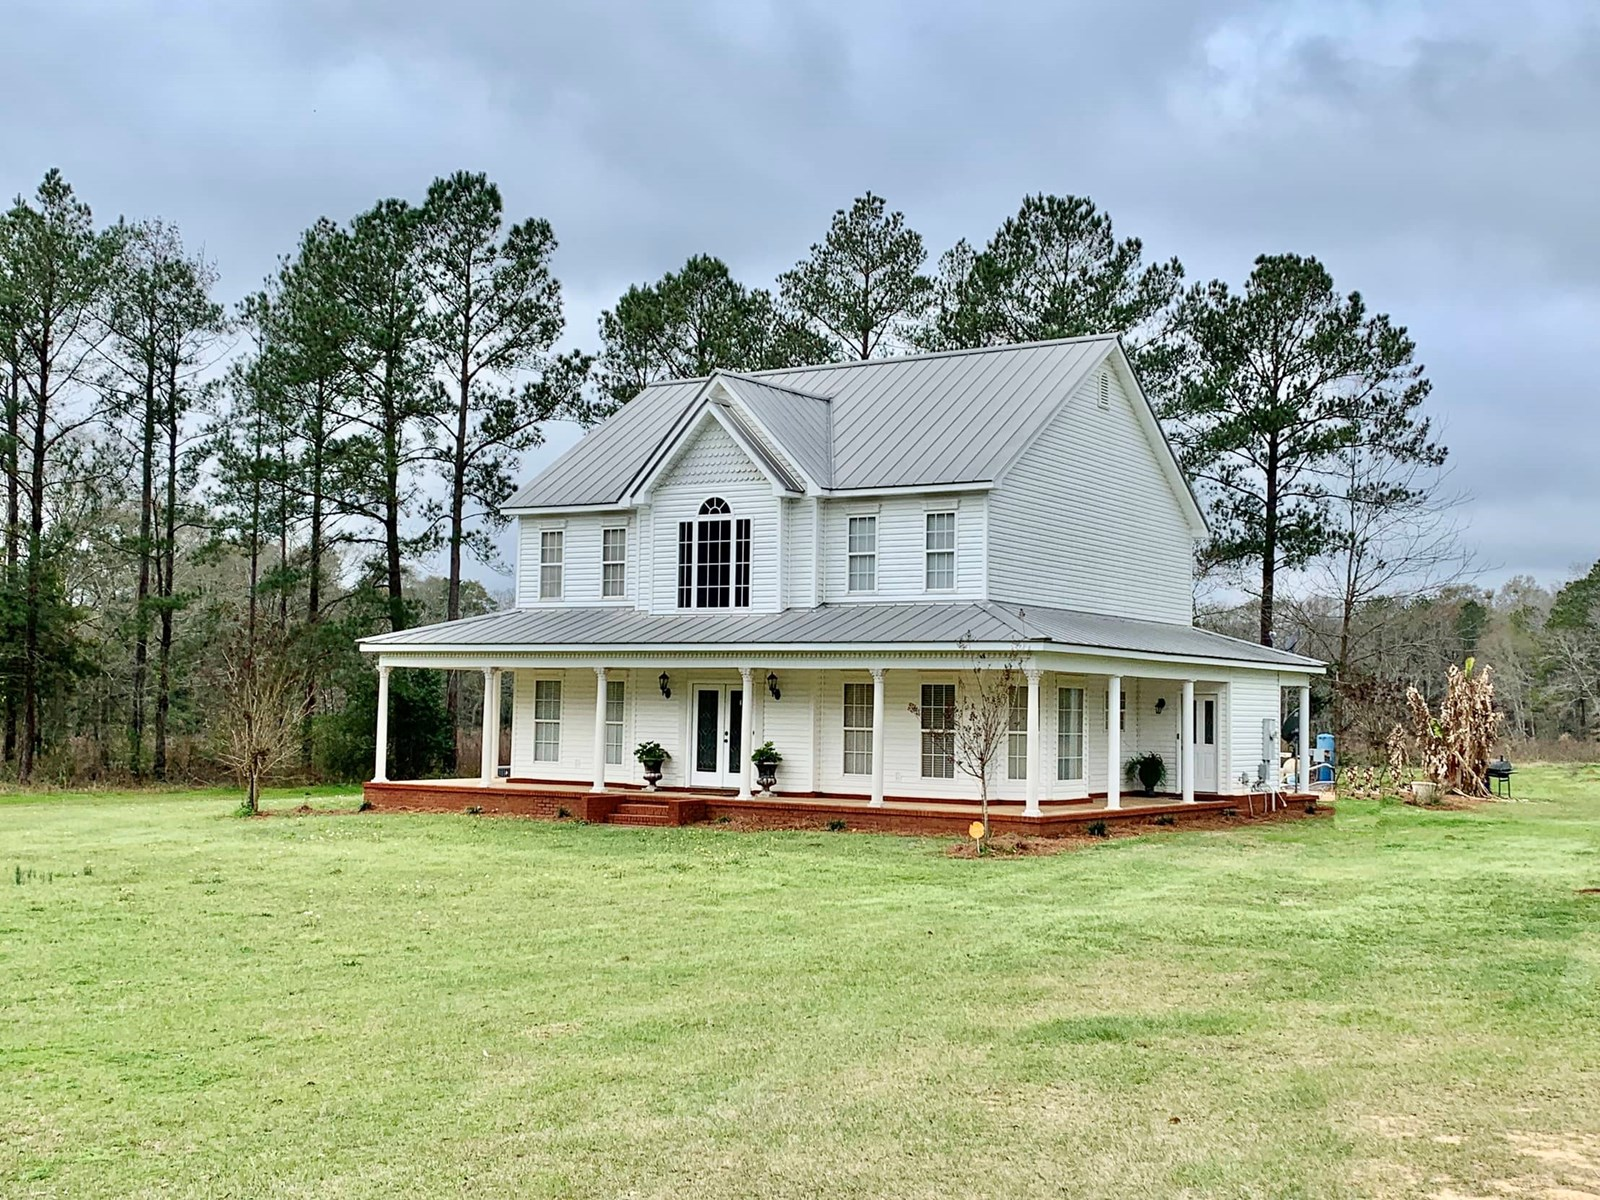 Home & 2 Acres For Sale - Hartford Alabama - Farmhouse